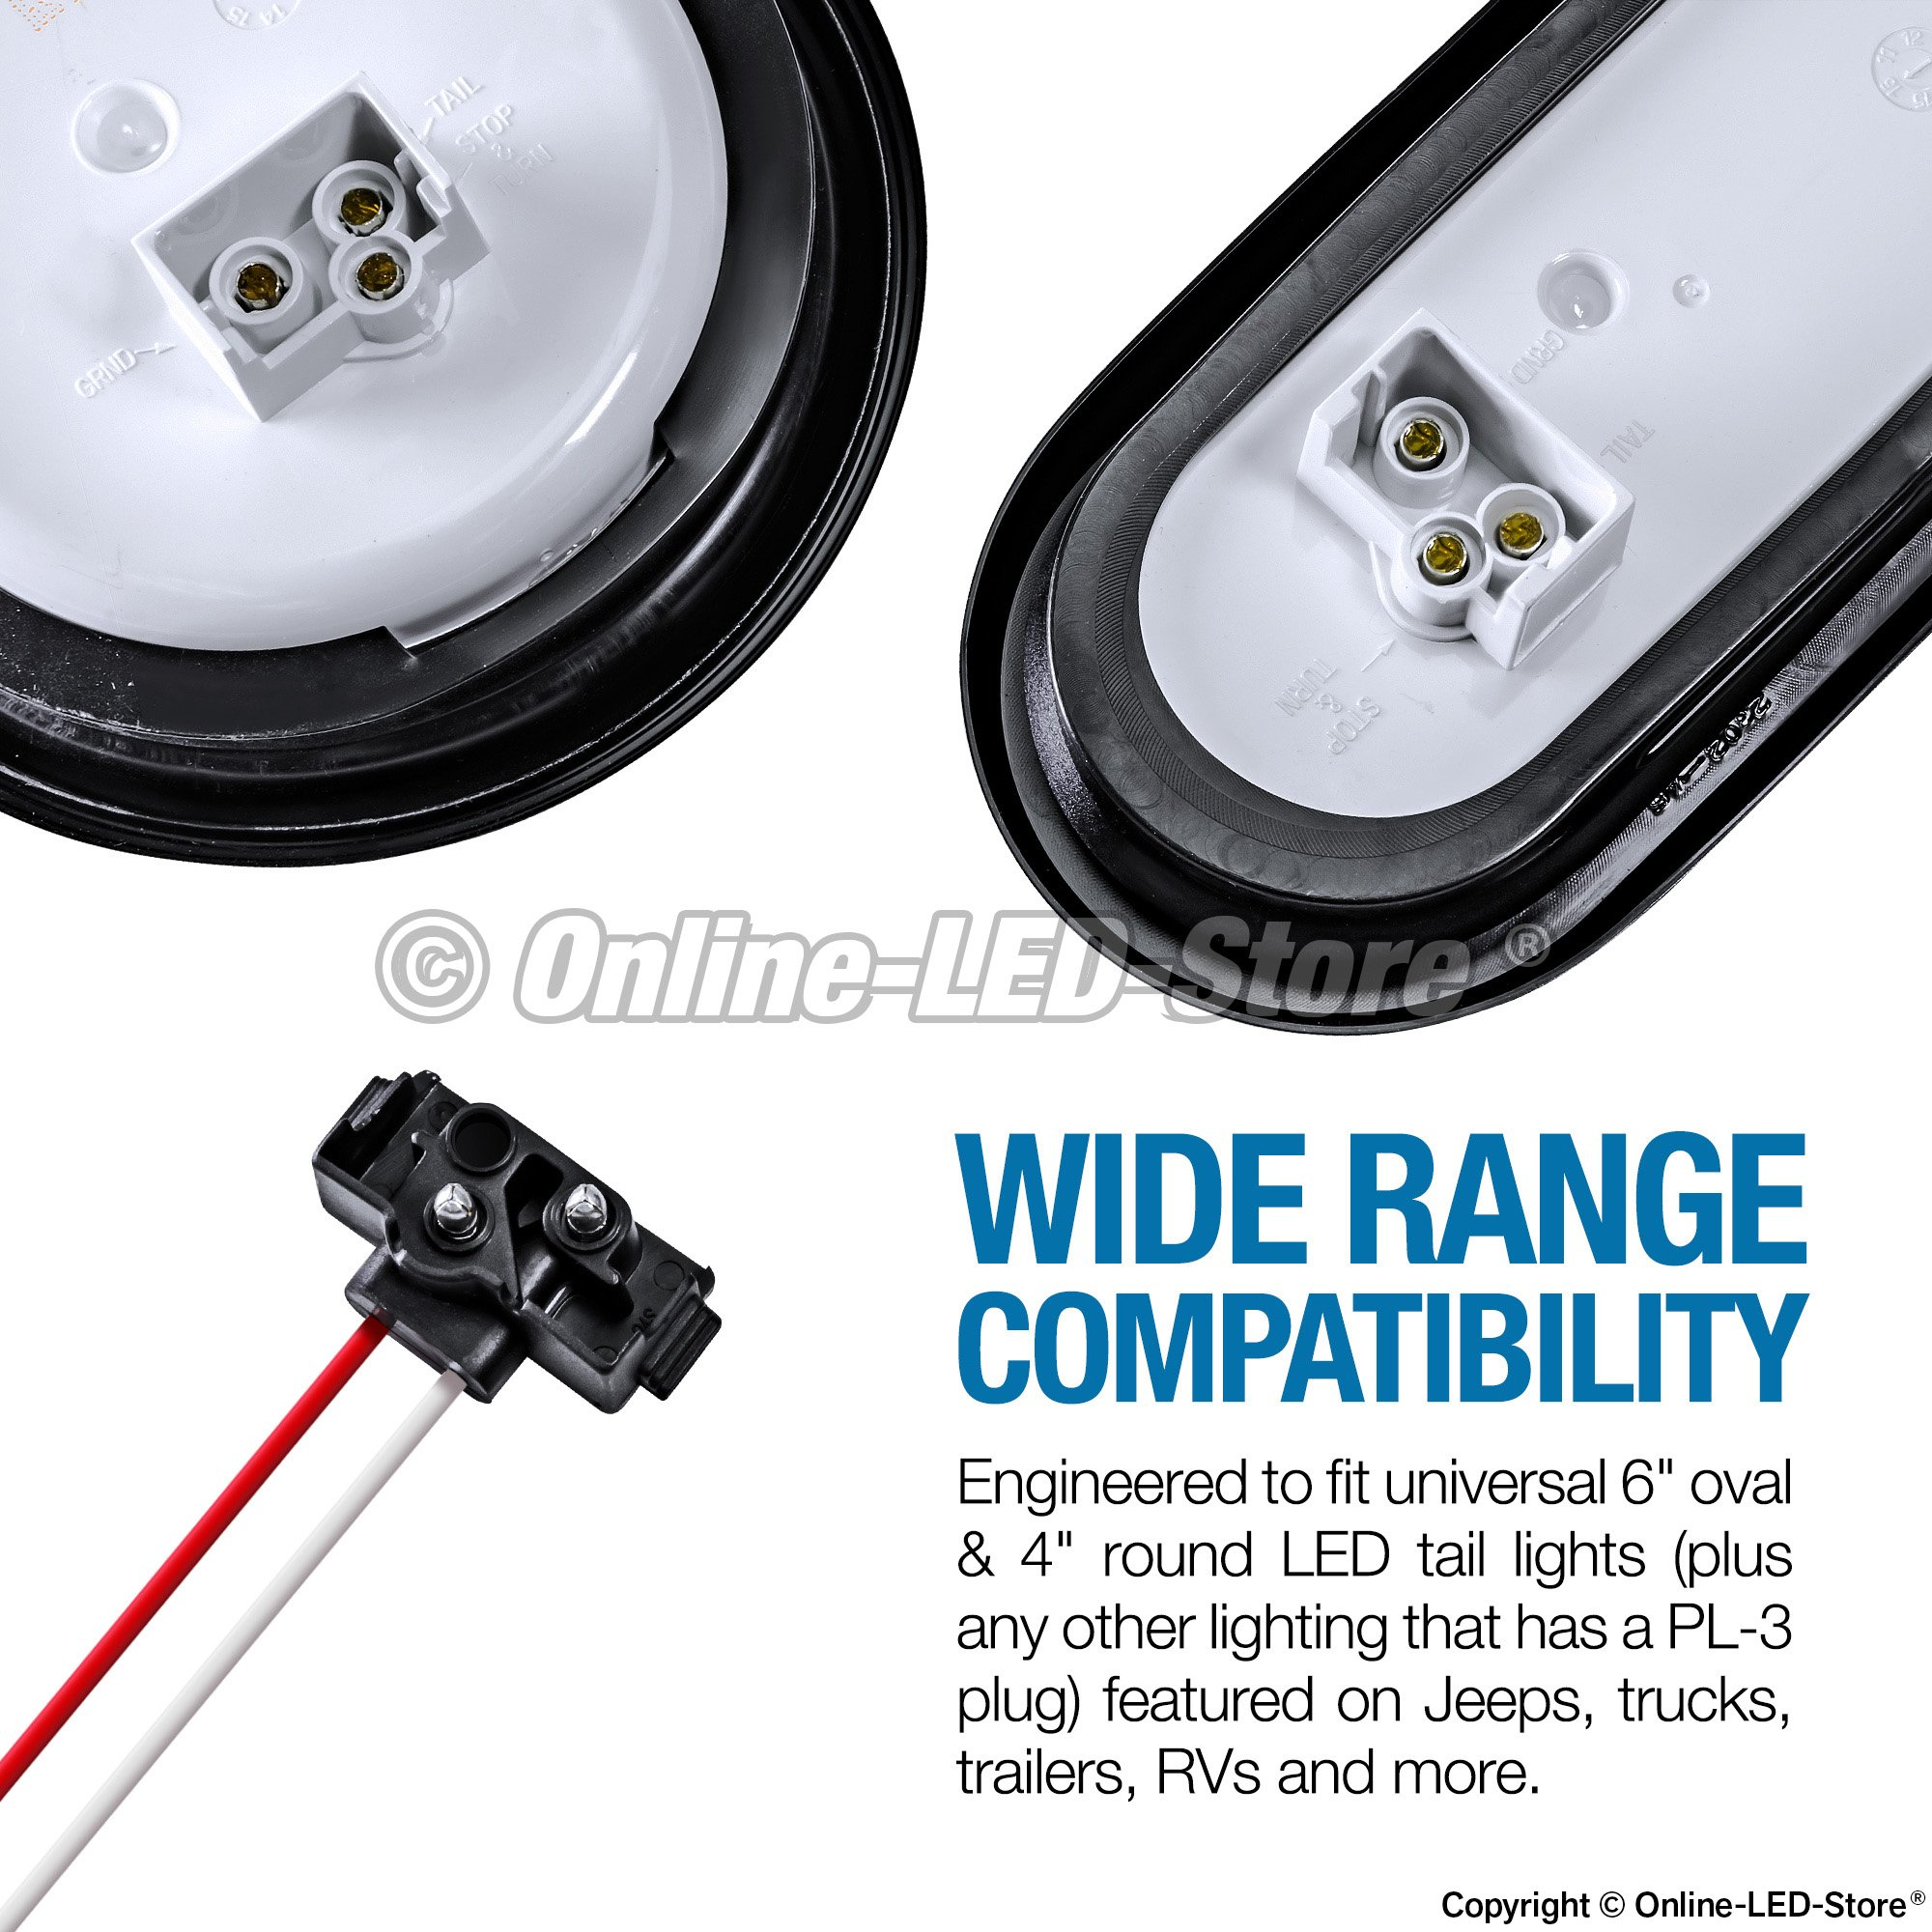 LED Taillight 90 Degree PL-3 2-Pin Plug [Easy Installation] [Fits 4'' Round Taillights] [Fits 6'' Oval Taillights] - Connector for Trailers RV Jeep & Trucks Reverse Back-up Lights by ONLINE LED STORE (Image #4)